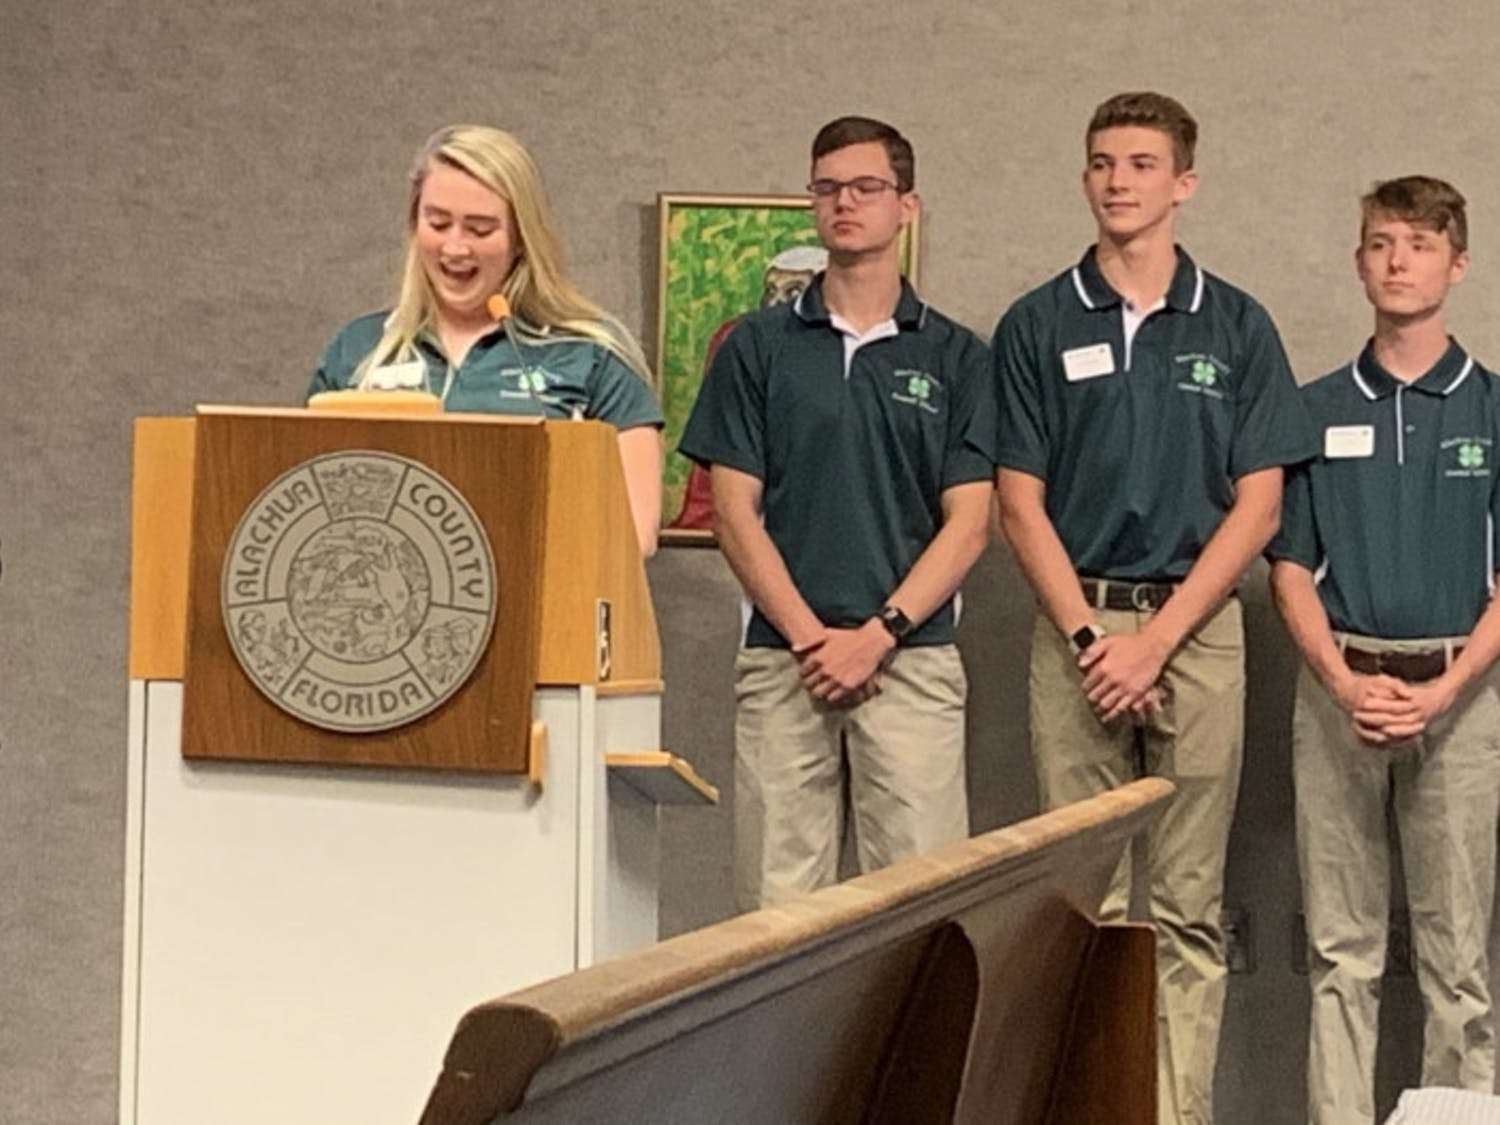 Alachua County 4-H President Madison Hurm, 17, speaks at Tuesday's County Commission meeting. The board proclaimed Oct. 6 through Oct. 12 as National 4-H Week in Alachua County.